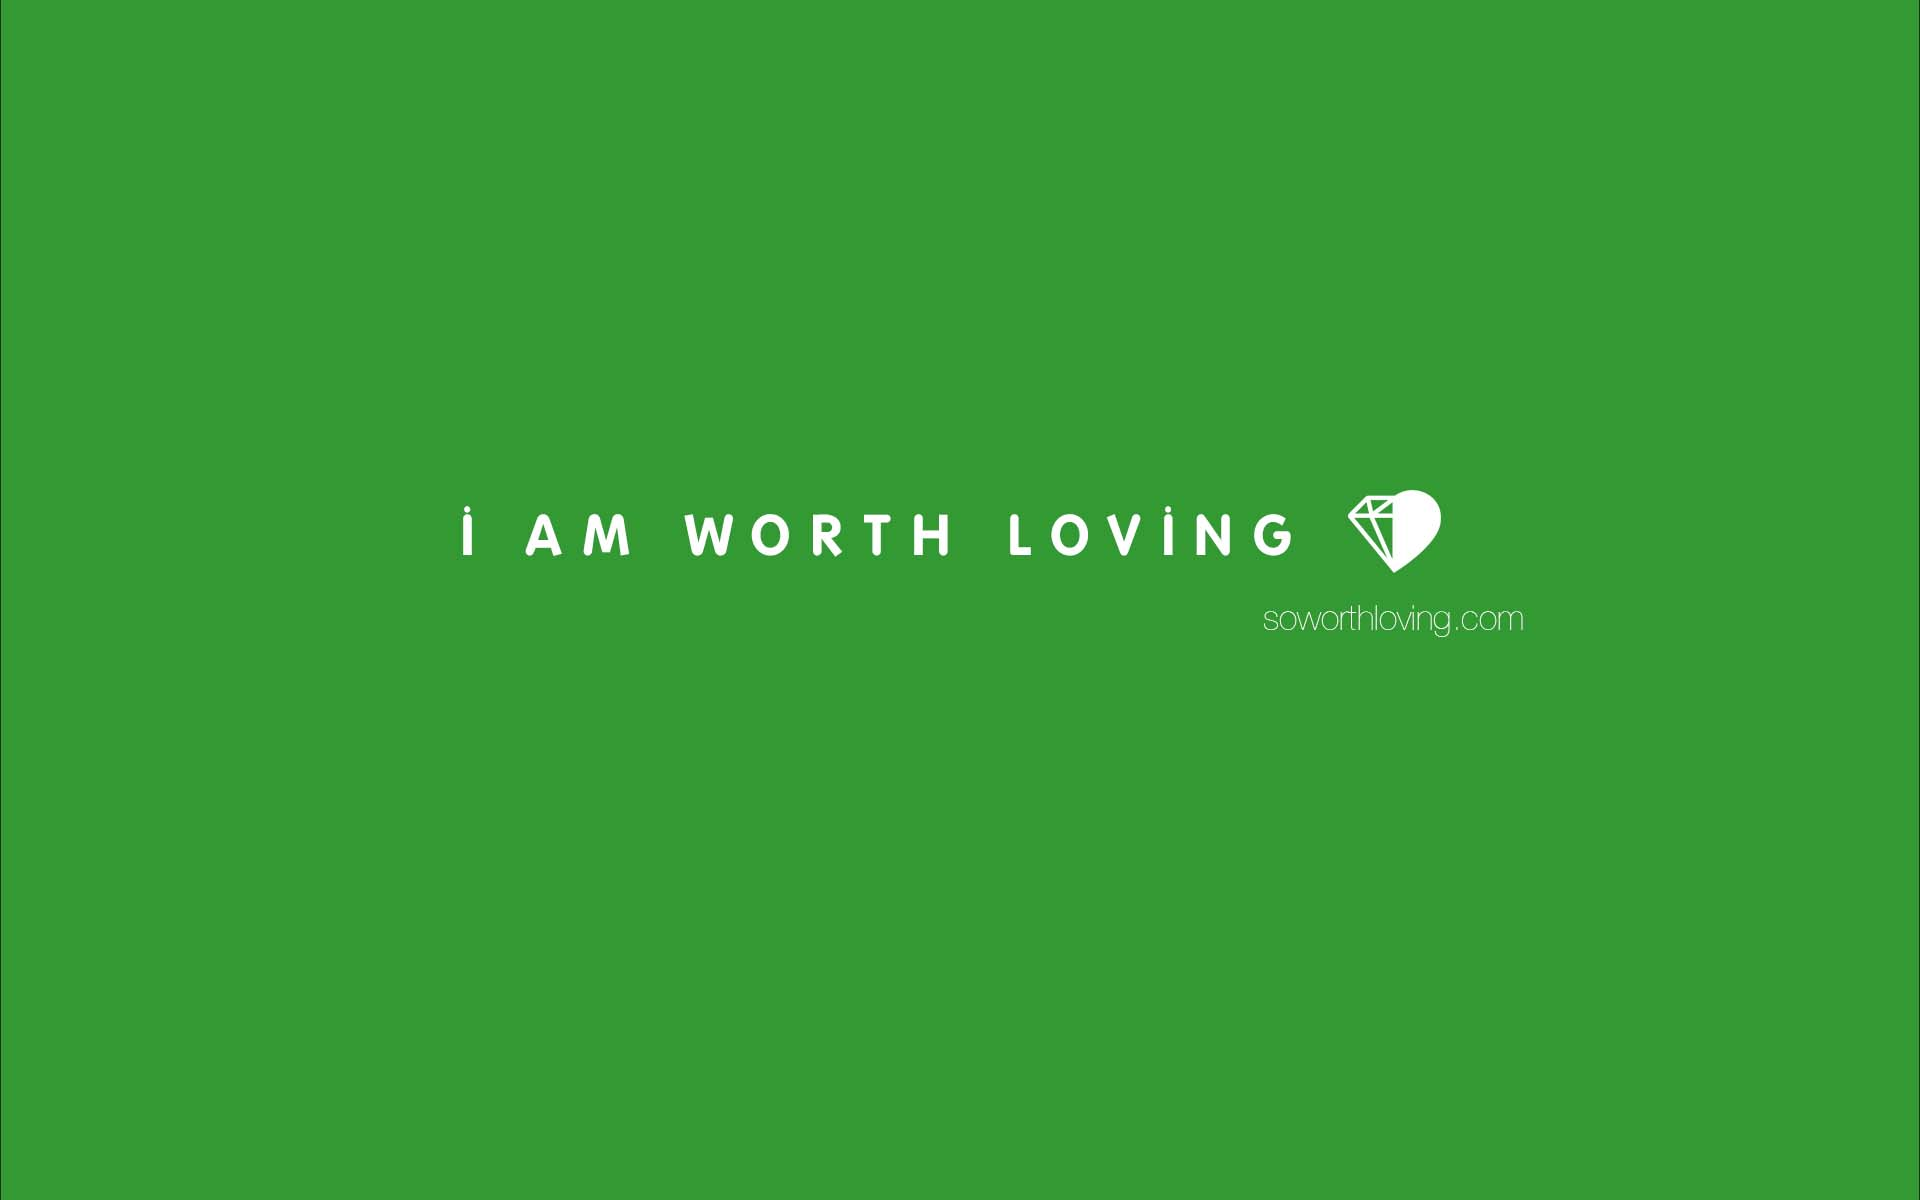 Bosch10 - I Am Worth Loving Wallpaper